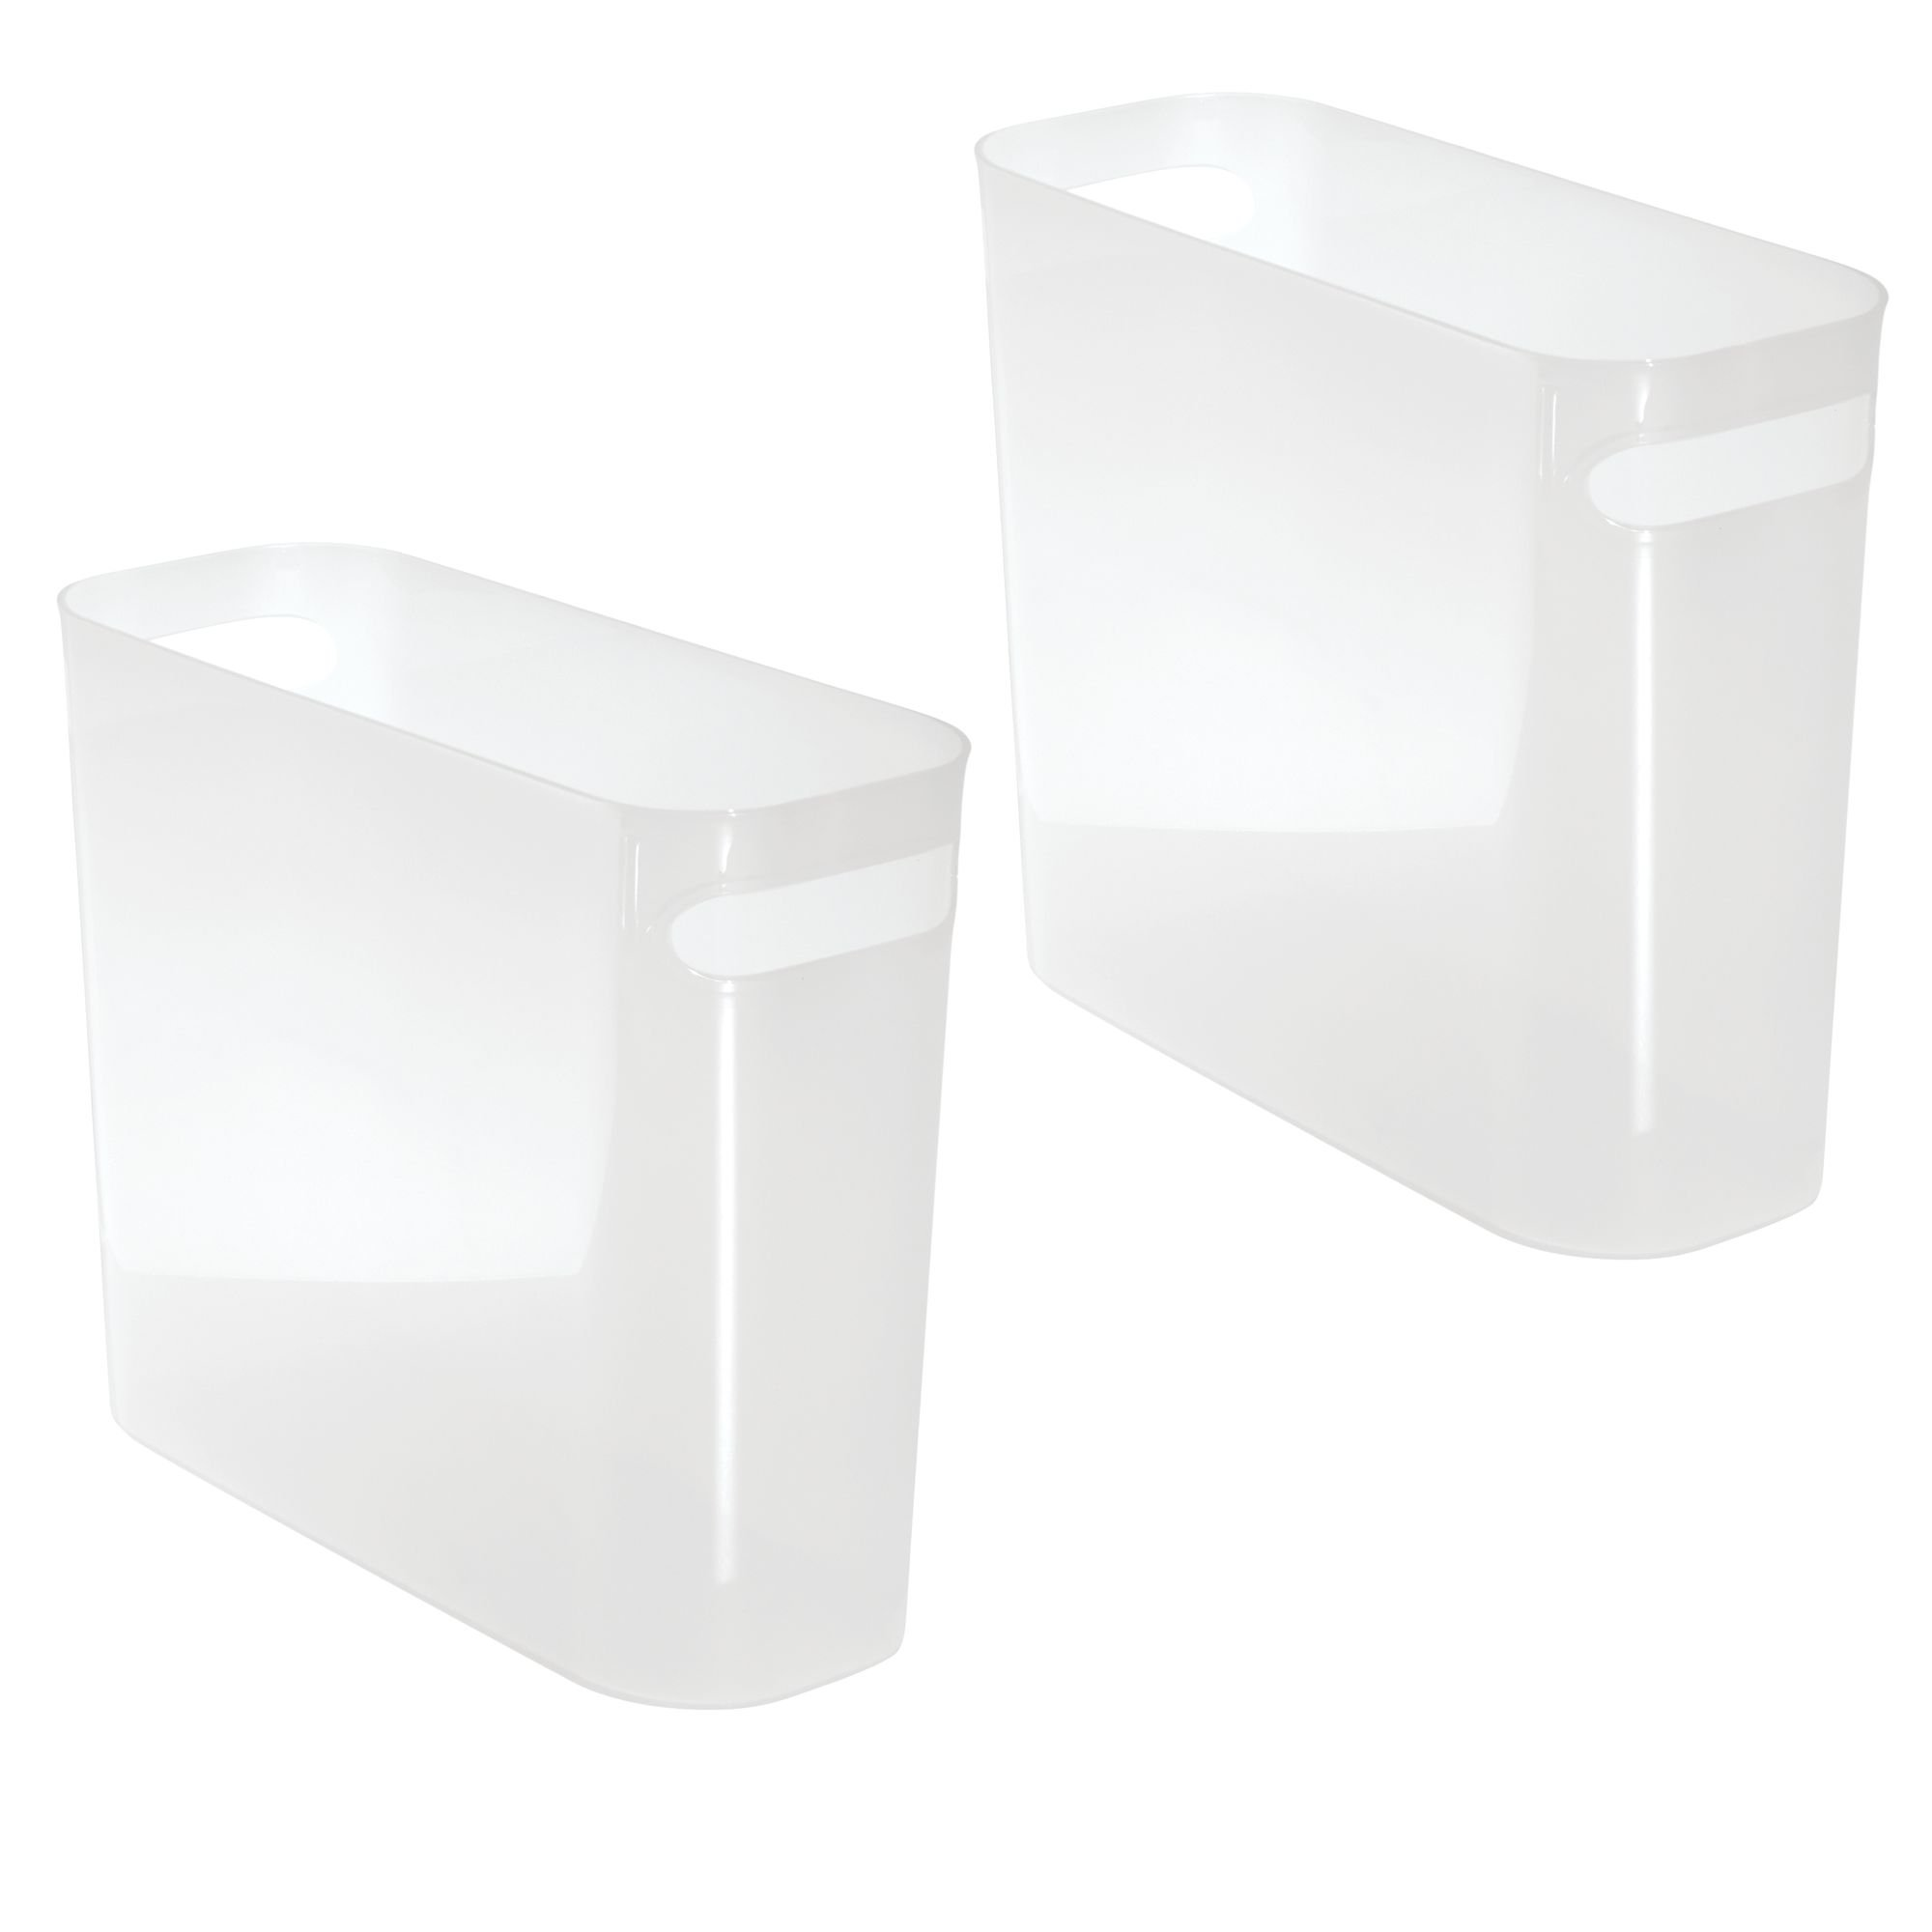 mDesign Slim Plastic Rectangular Small Trash Can Wastebasket, Garbage Container Bin with Handles for Bathroom, Kitchen, Home Office, Dorm, Kids Room - 10'' high, Shatter-Resistant, 2 Pack - Frost by mDesign